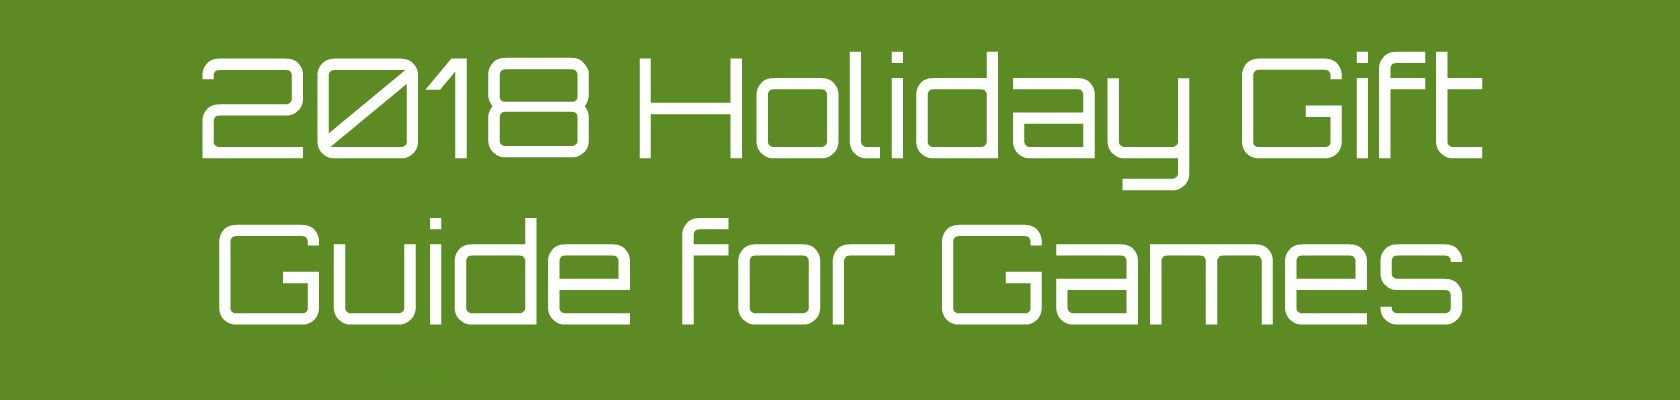 2018 Holiday Gift Guide for Gamers